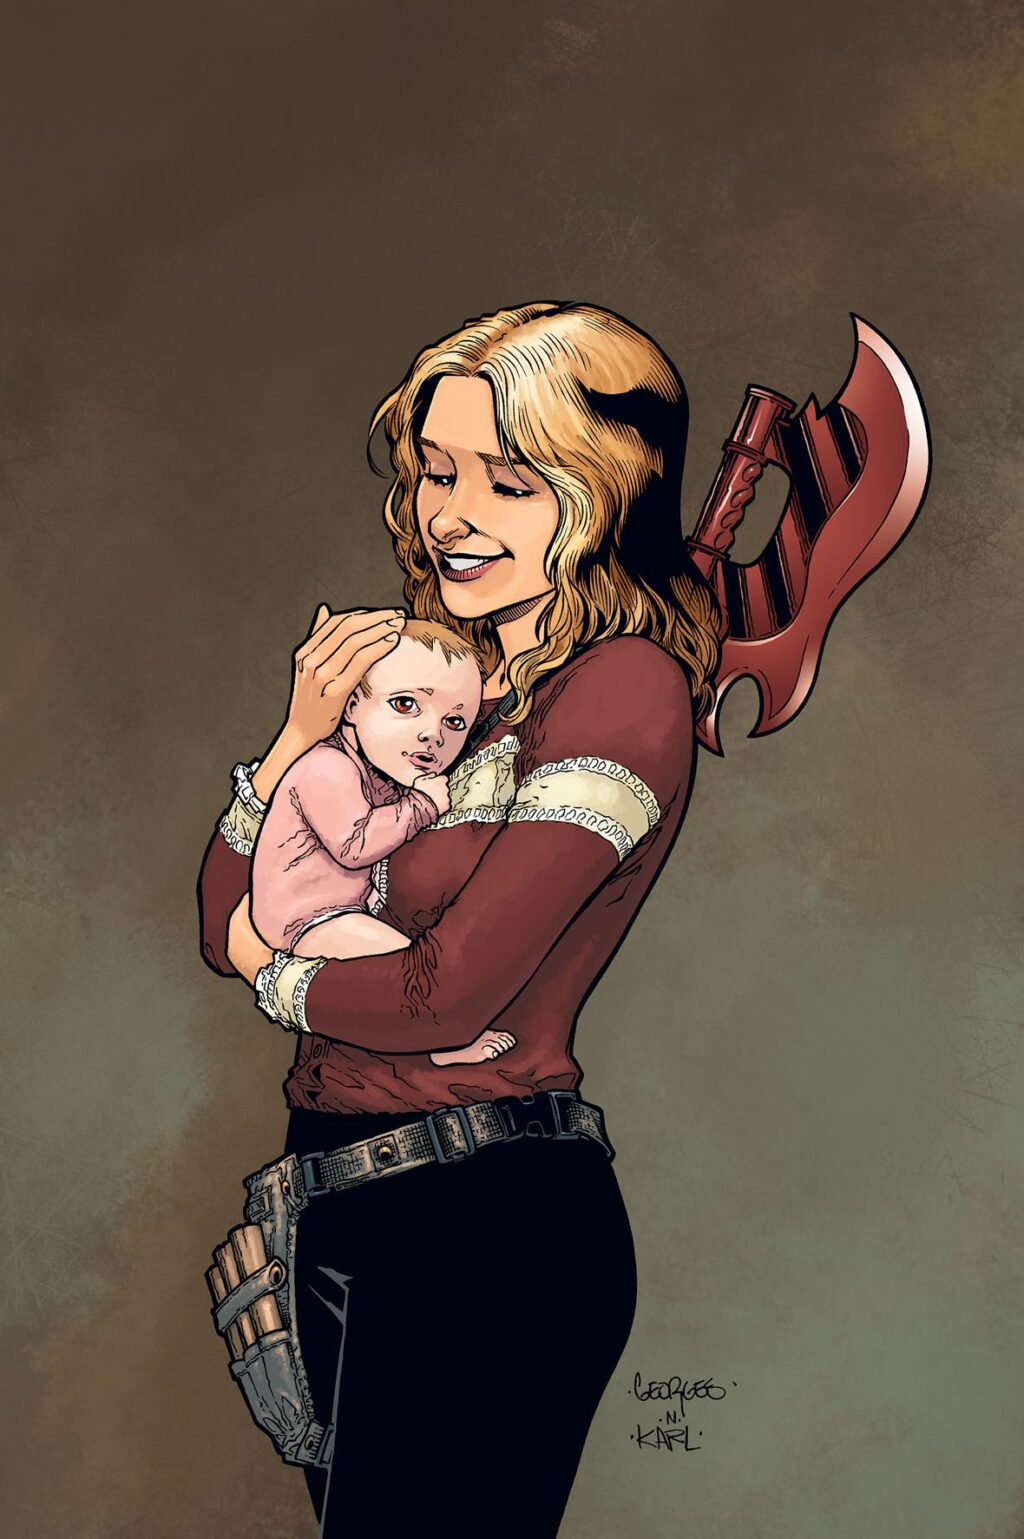 Buffy3 1024x1539 - Buffy Is Back in New Buffy the Vampire Slayer Comic Miniseries by Joss Whedon